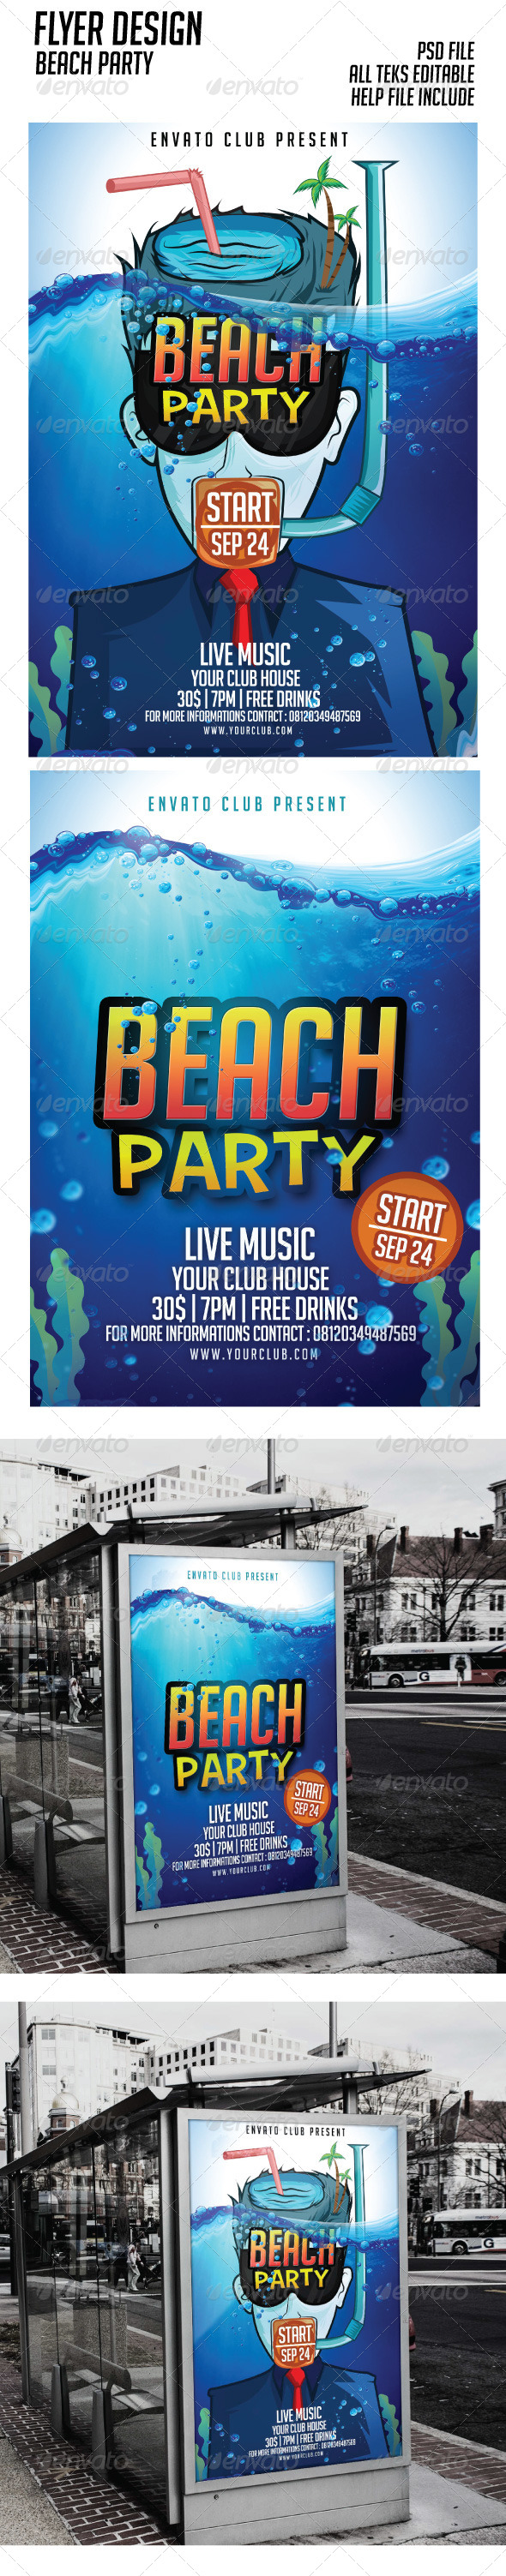 Beach Party Flyer Events - Events Flyers